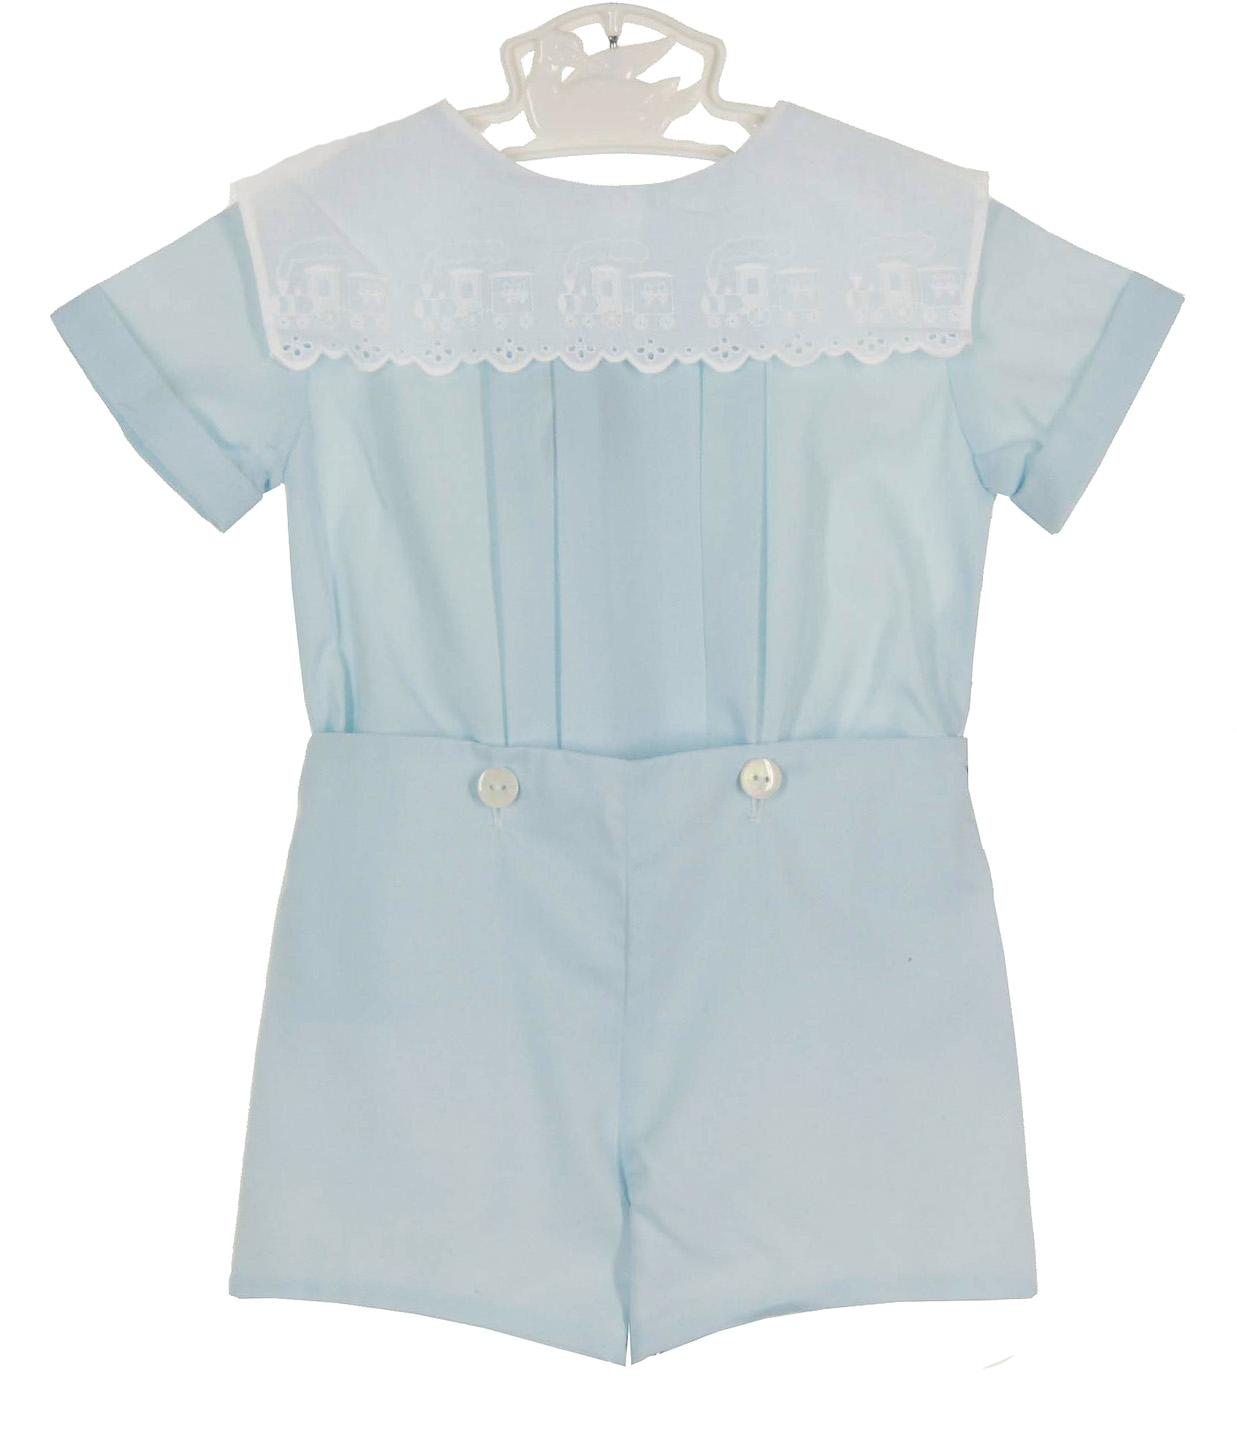 Avi Kids blue button on shorts set with train embroidered white ...